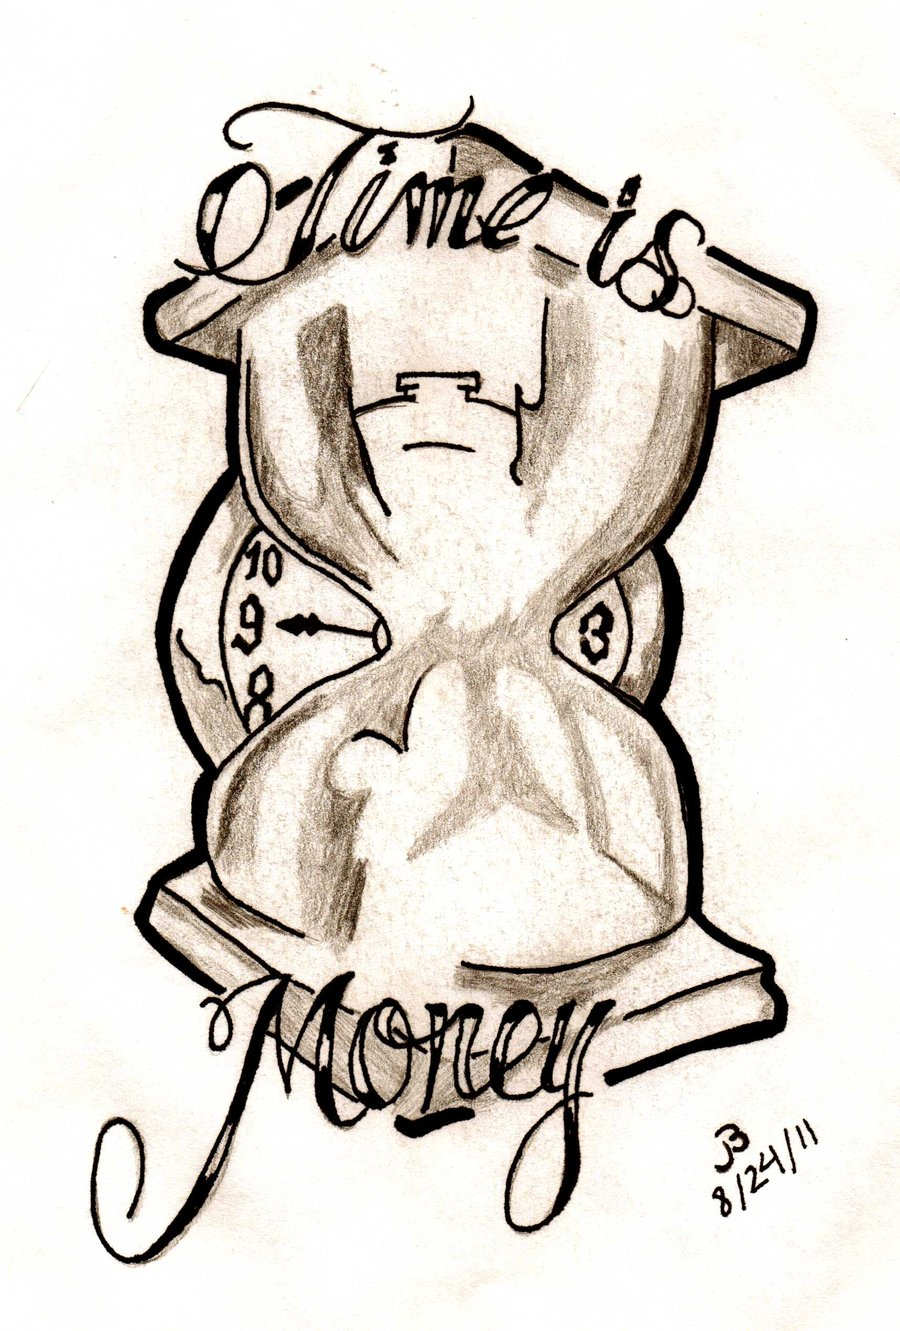 Money Tattoo Drawings - ClipArt Best